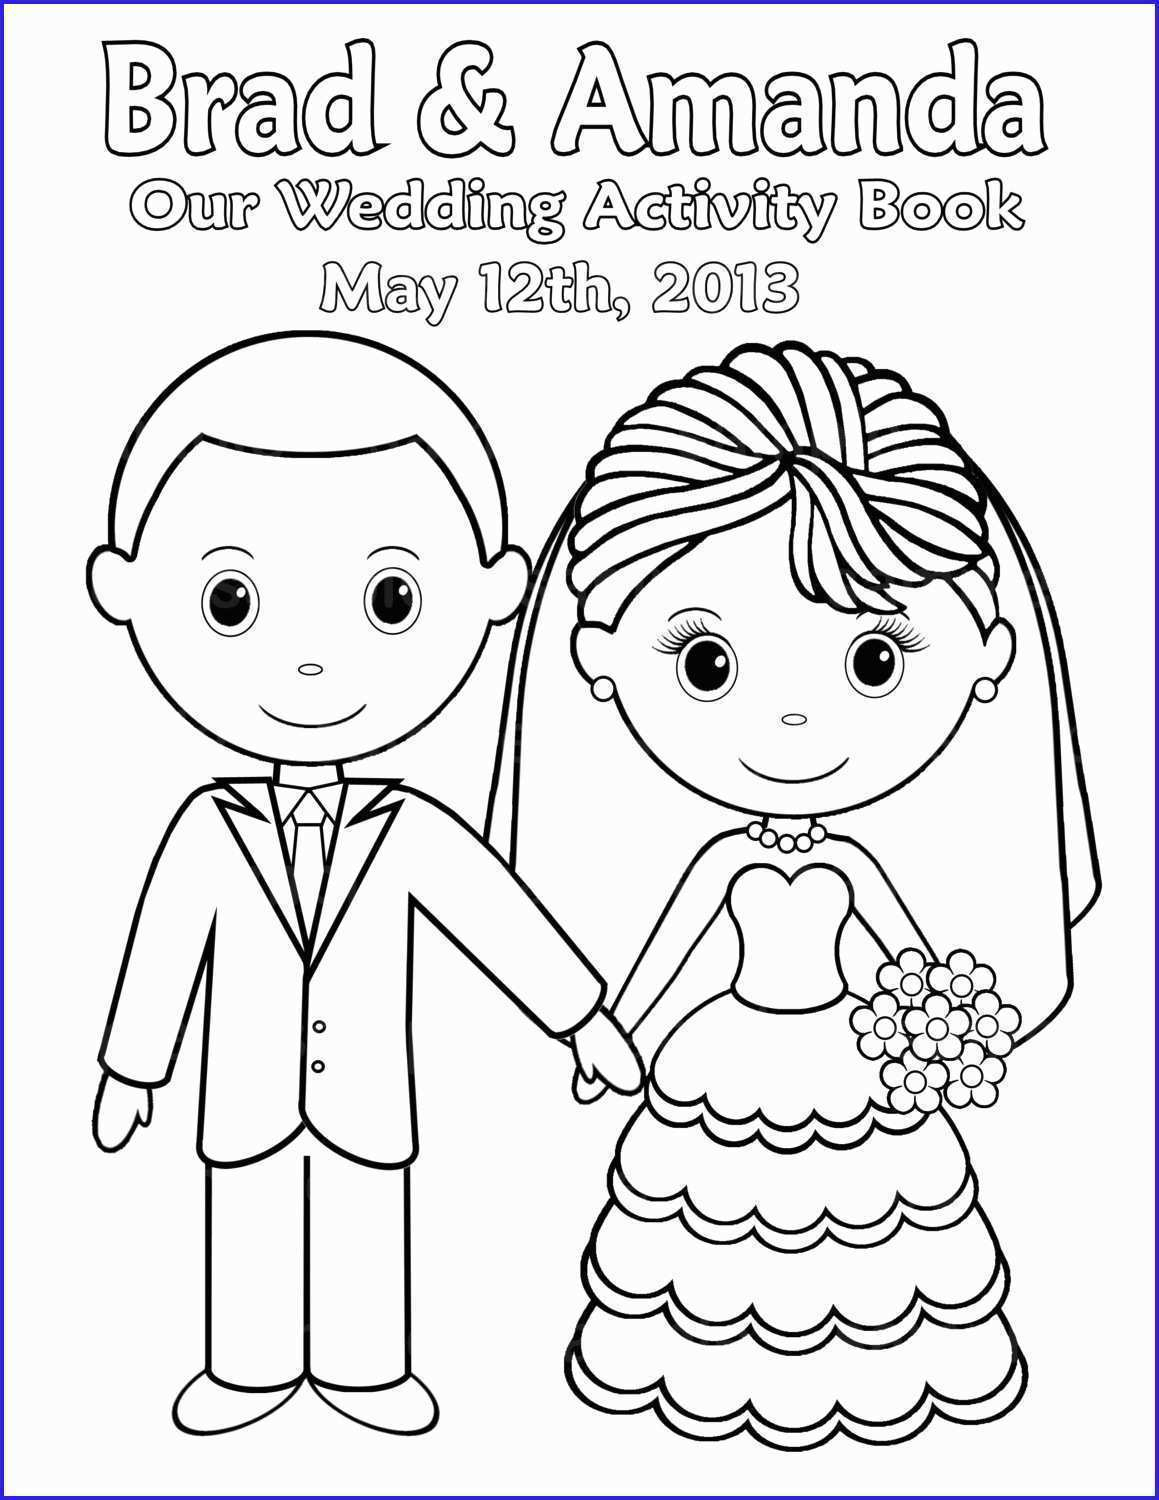 Coloring Pages : Custom Coloring Books From Photos Luxury Free - Free Printable Personalized Children's Books